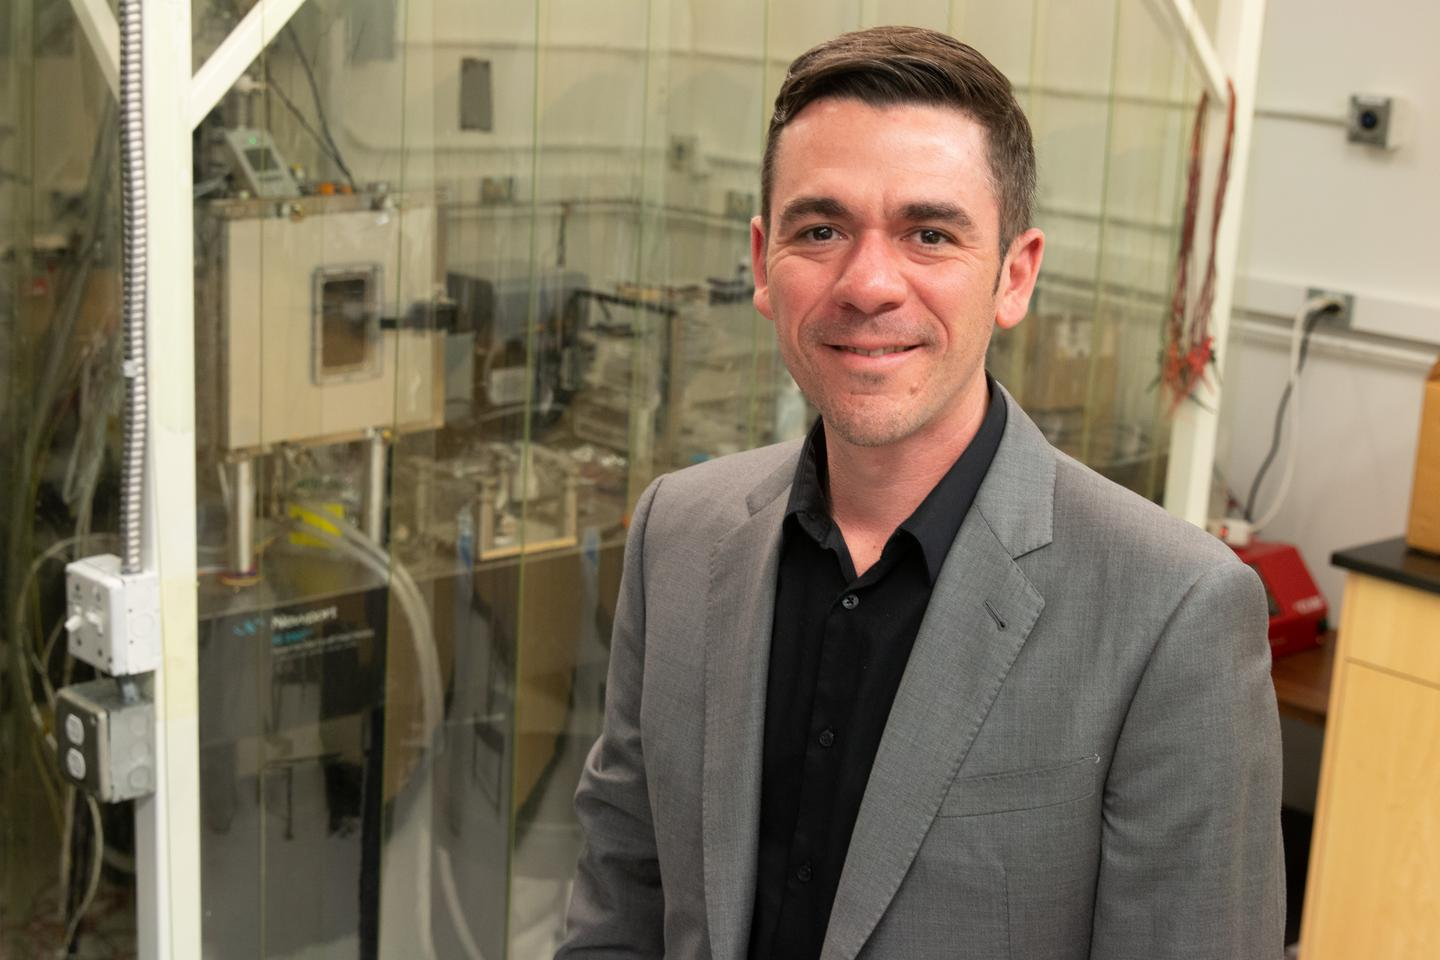 University of Utah mechanical engineering associate professor Mathieu Francoeur has discovered a way to produce more electricity from heat than thought possible with his Near-Field Radiative Heat Transfer Device